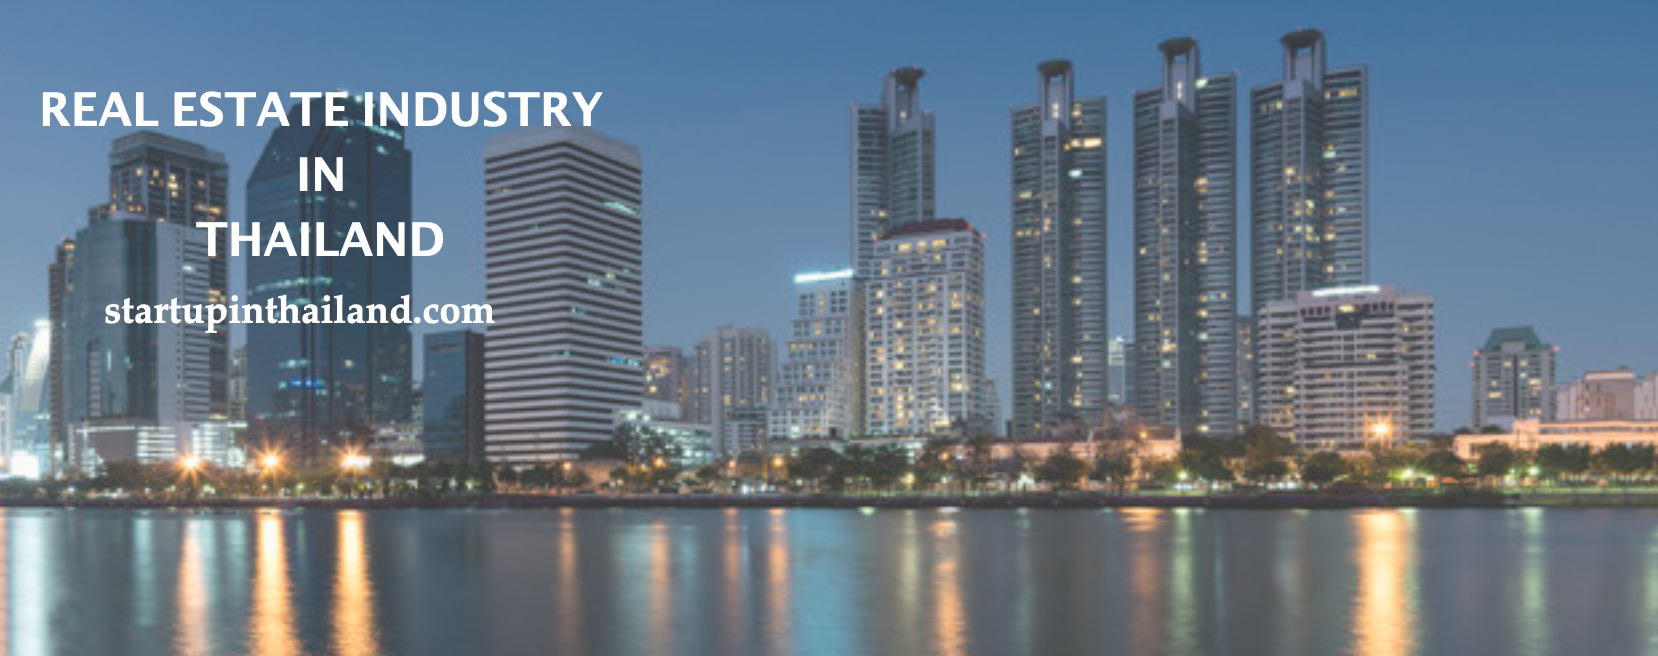 real estate industry in thailand cover photo